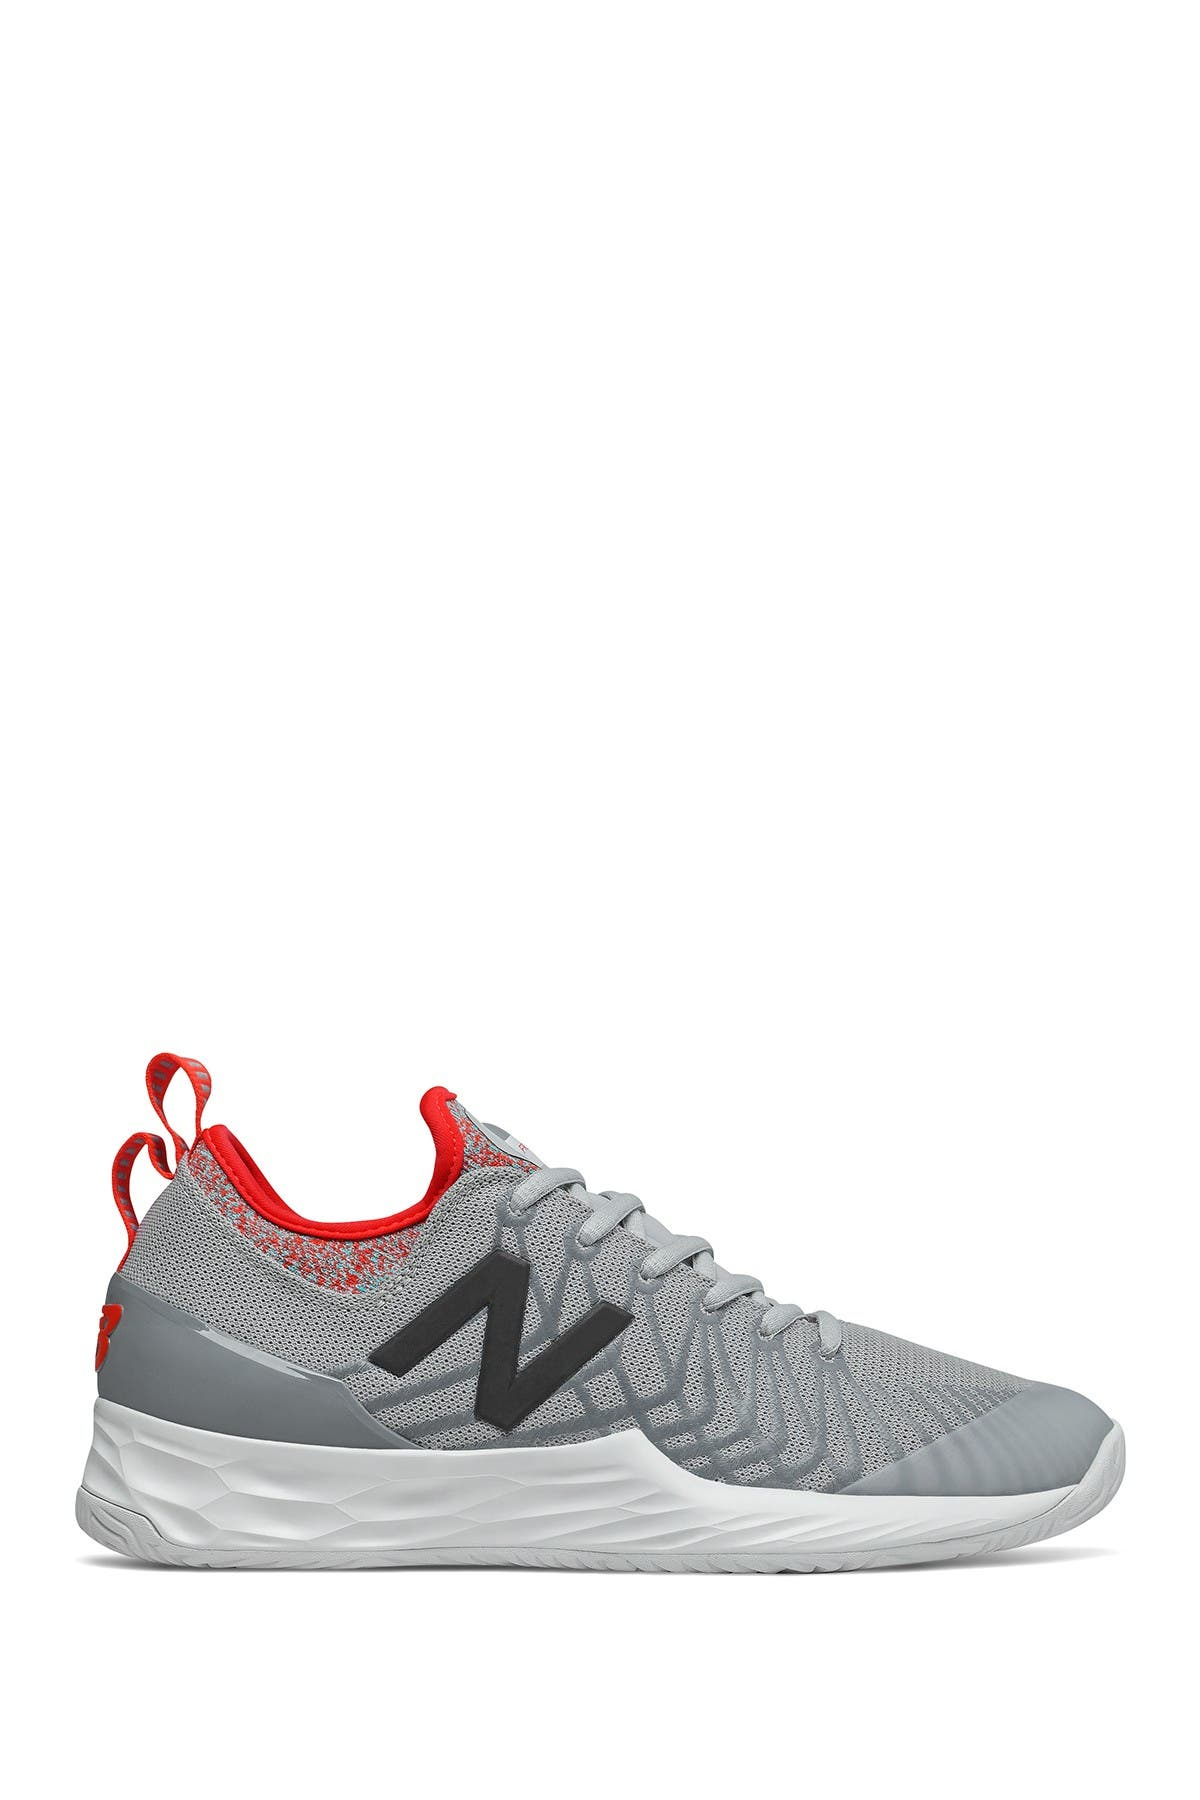 Image of New Balance 030 Running Sneaker - Wide Width Available